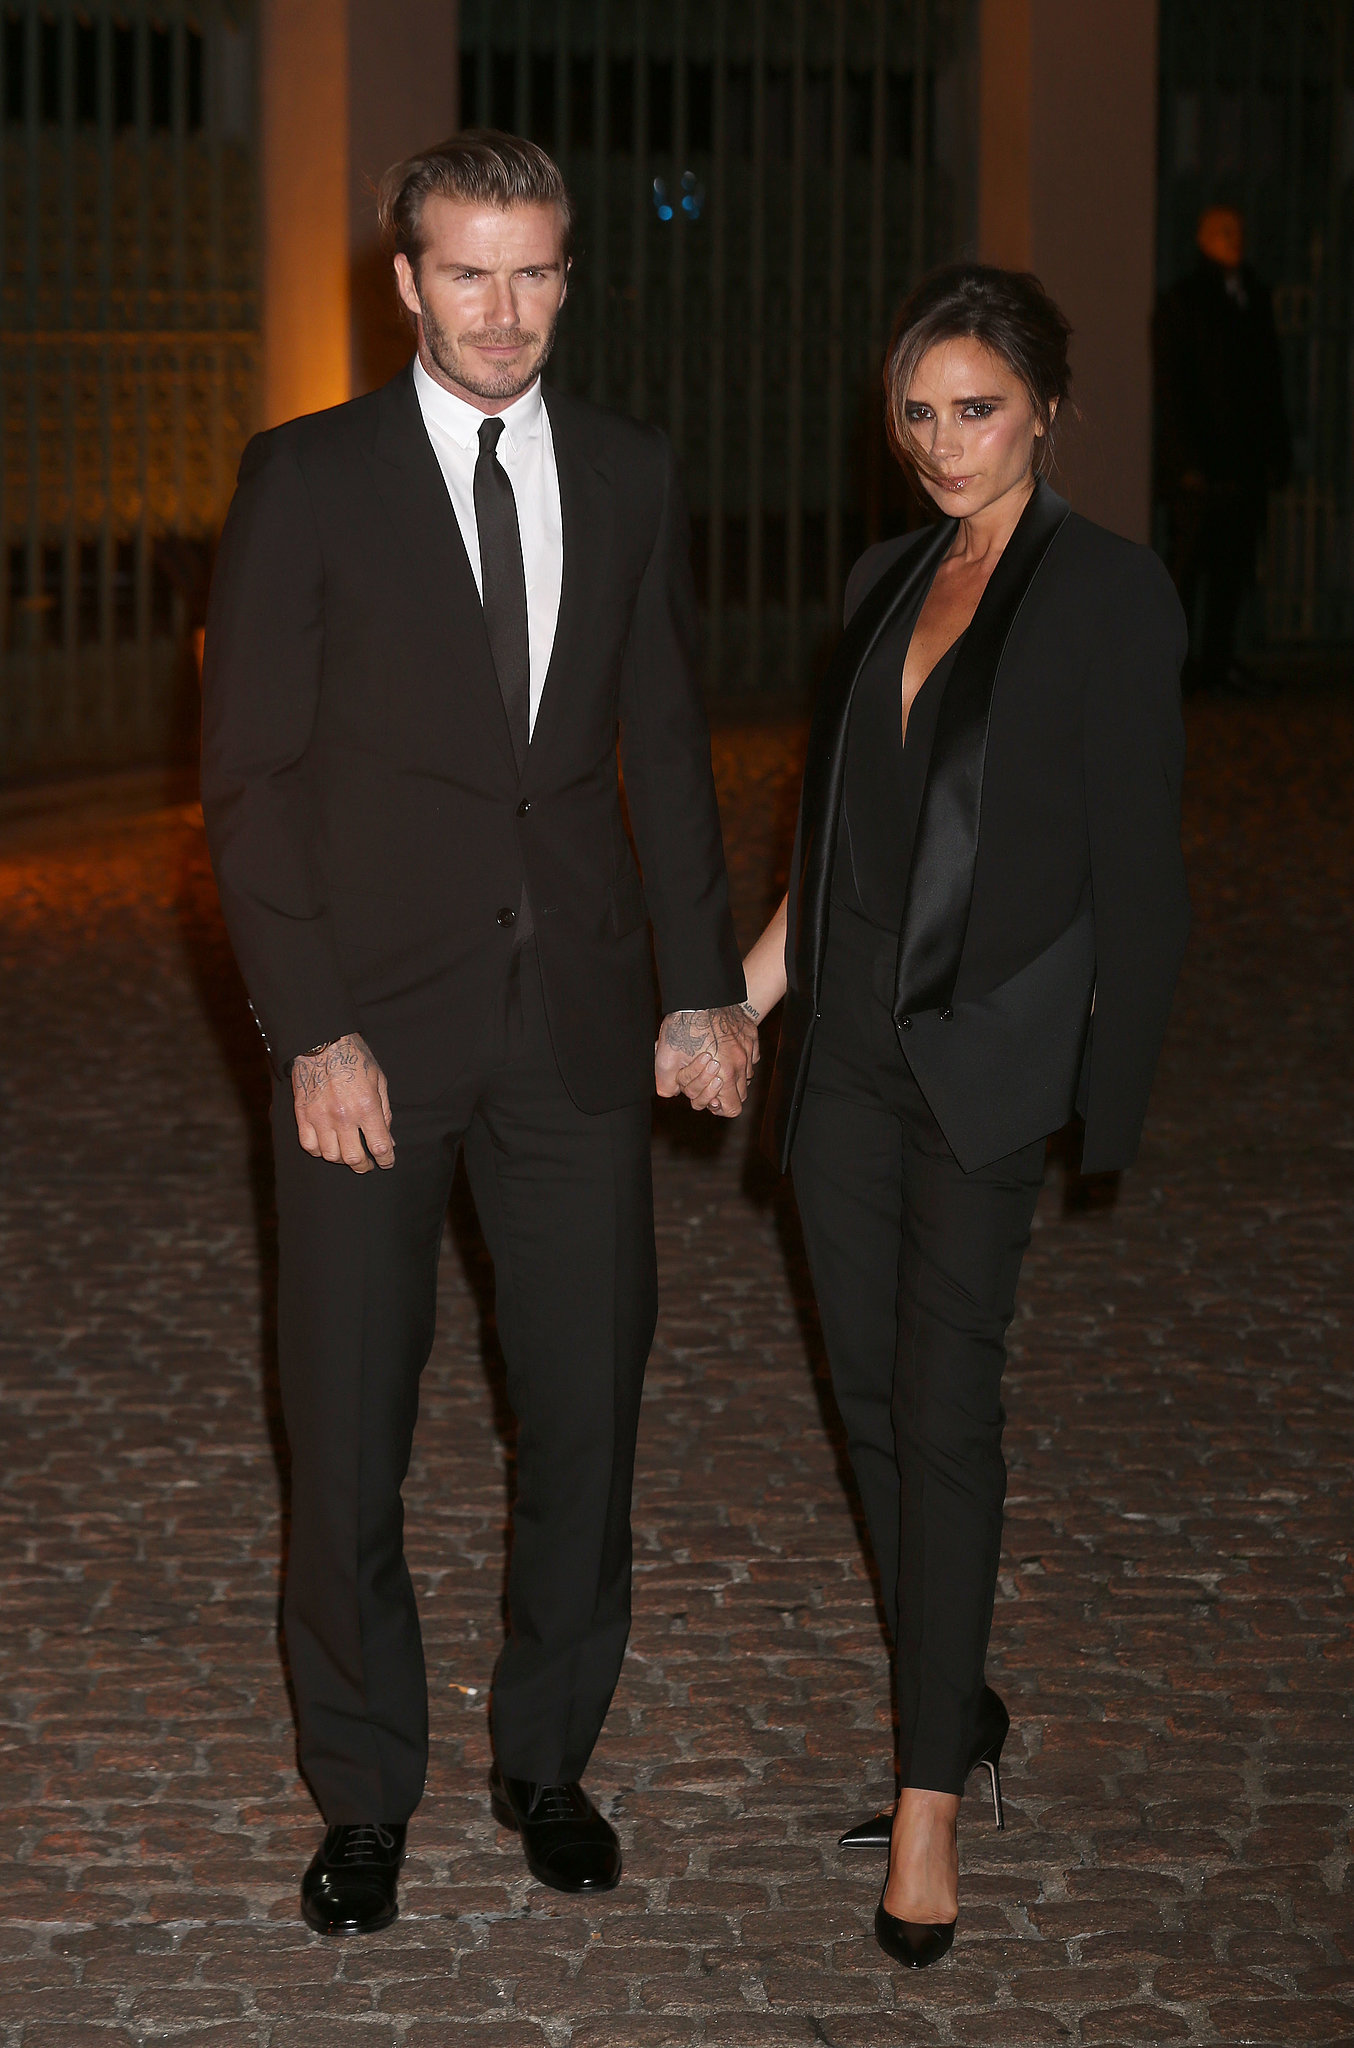 David and Victoria Beckham made a handsome pair while attending The Global Fund's Green Carpet Challenge event.